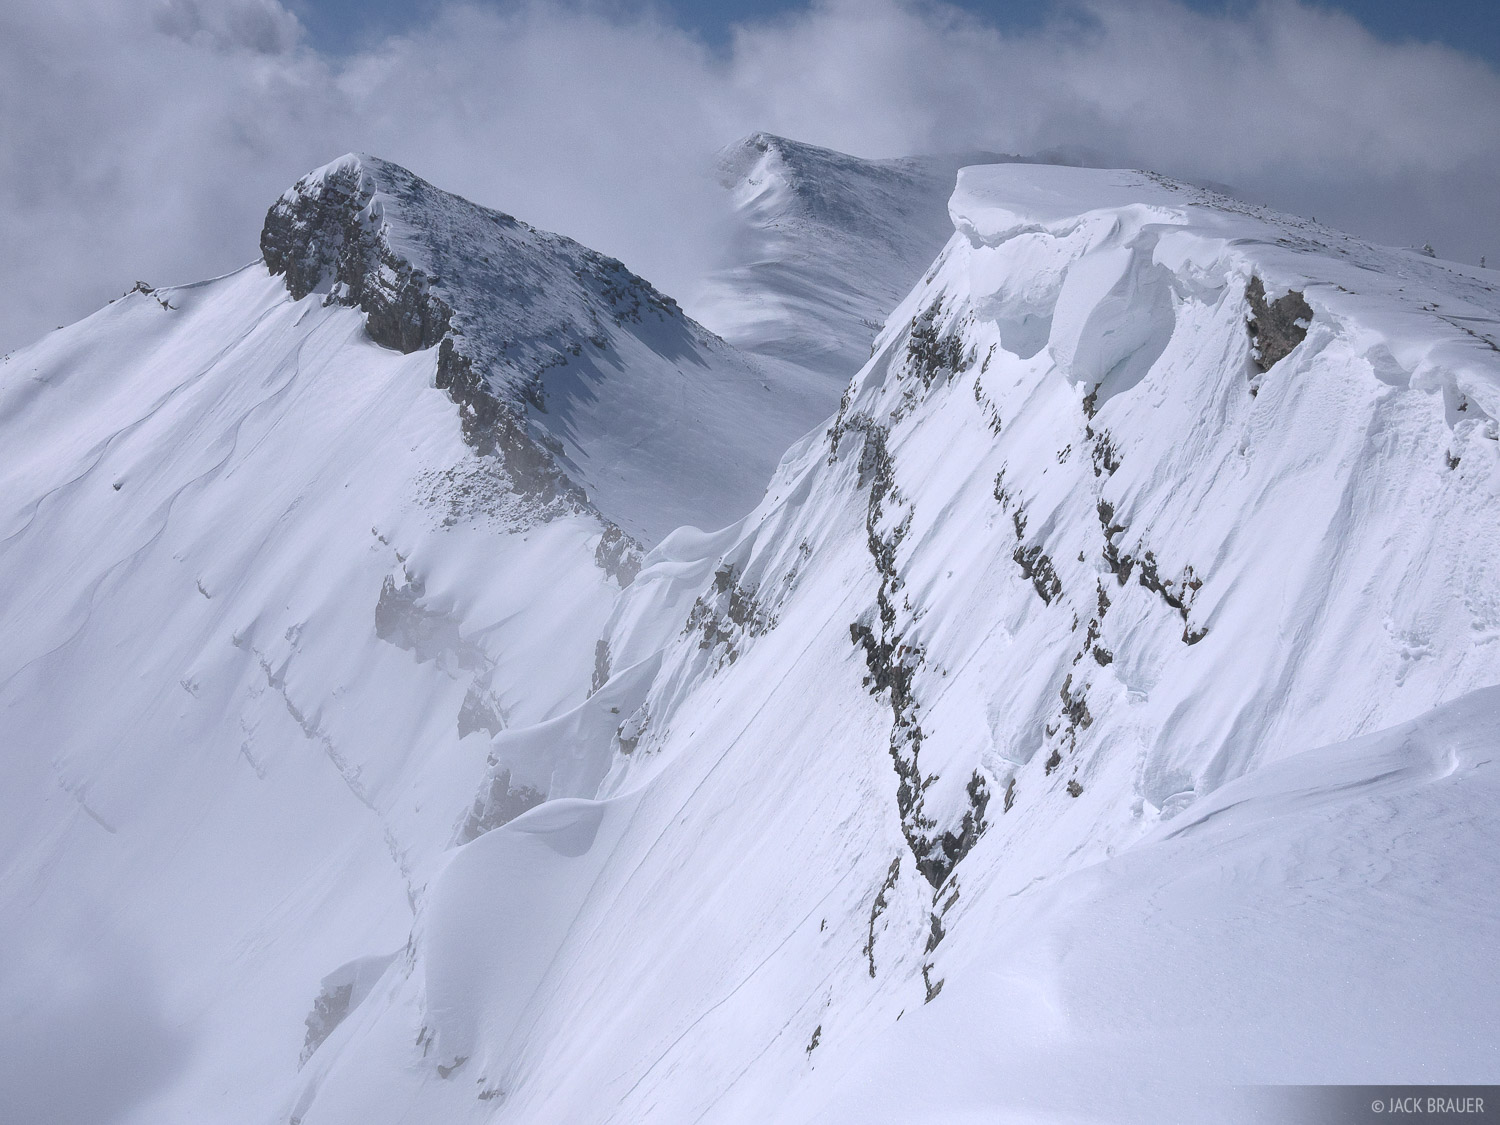 A view of the rugged Jackson Hole backcountry - March.